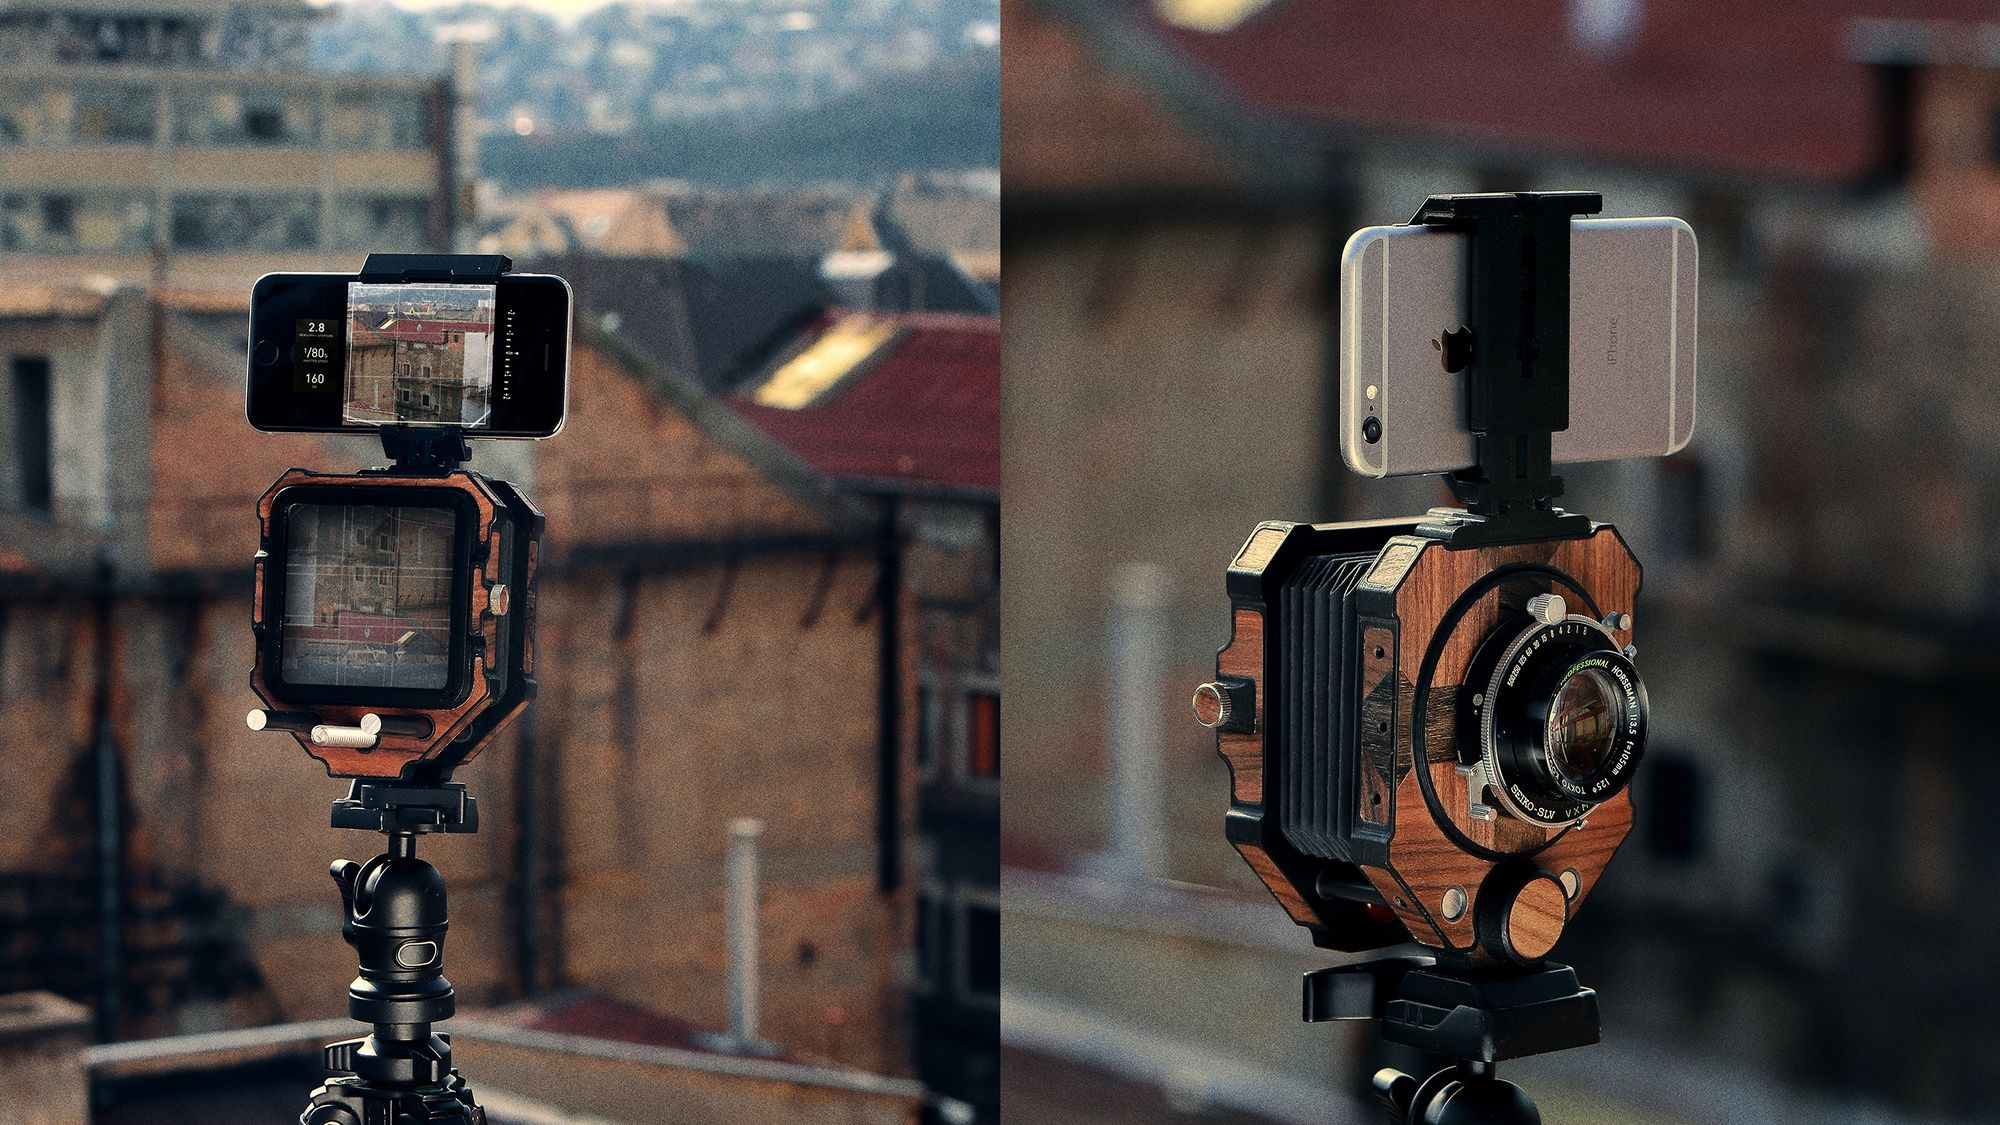 The Goodman One Is An Open Source 3D Printable Medium Format Camera - Free Printable Smile Your On Camera